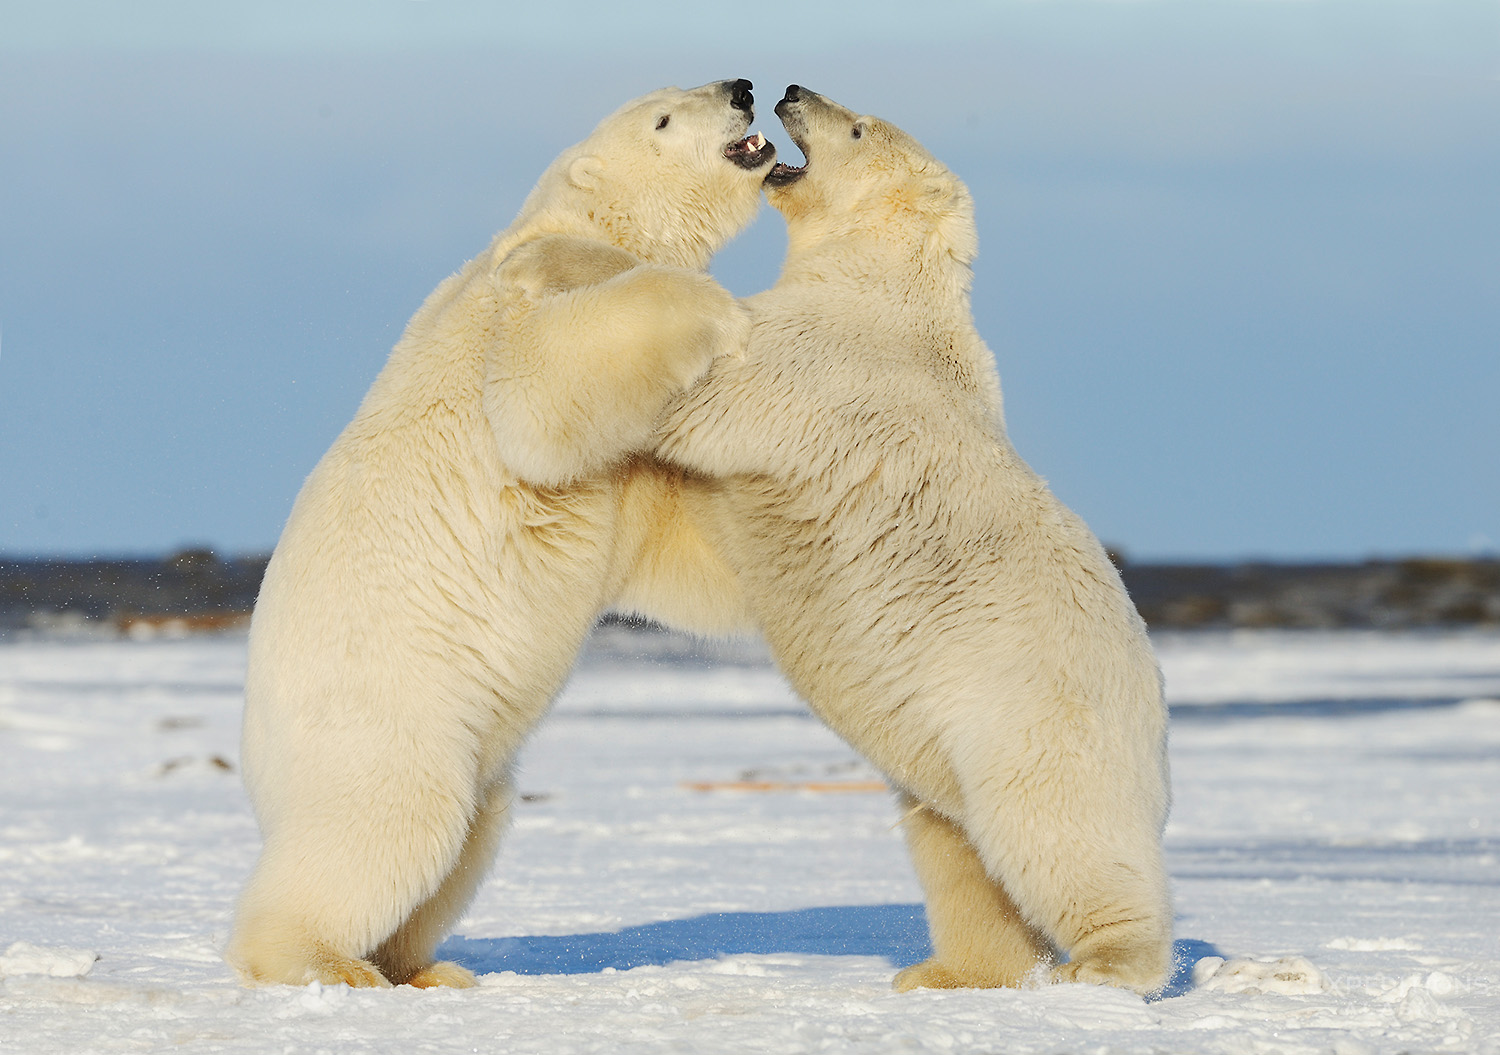 Polar bears (Ursus maritimus), playfighting, standing and wrestling on fresh snow in Arctic Alaska.